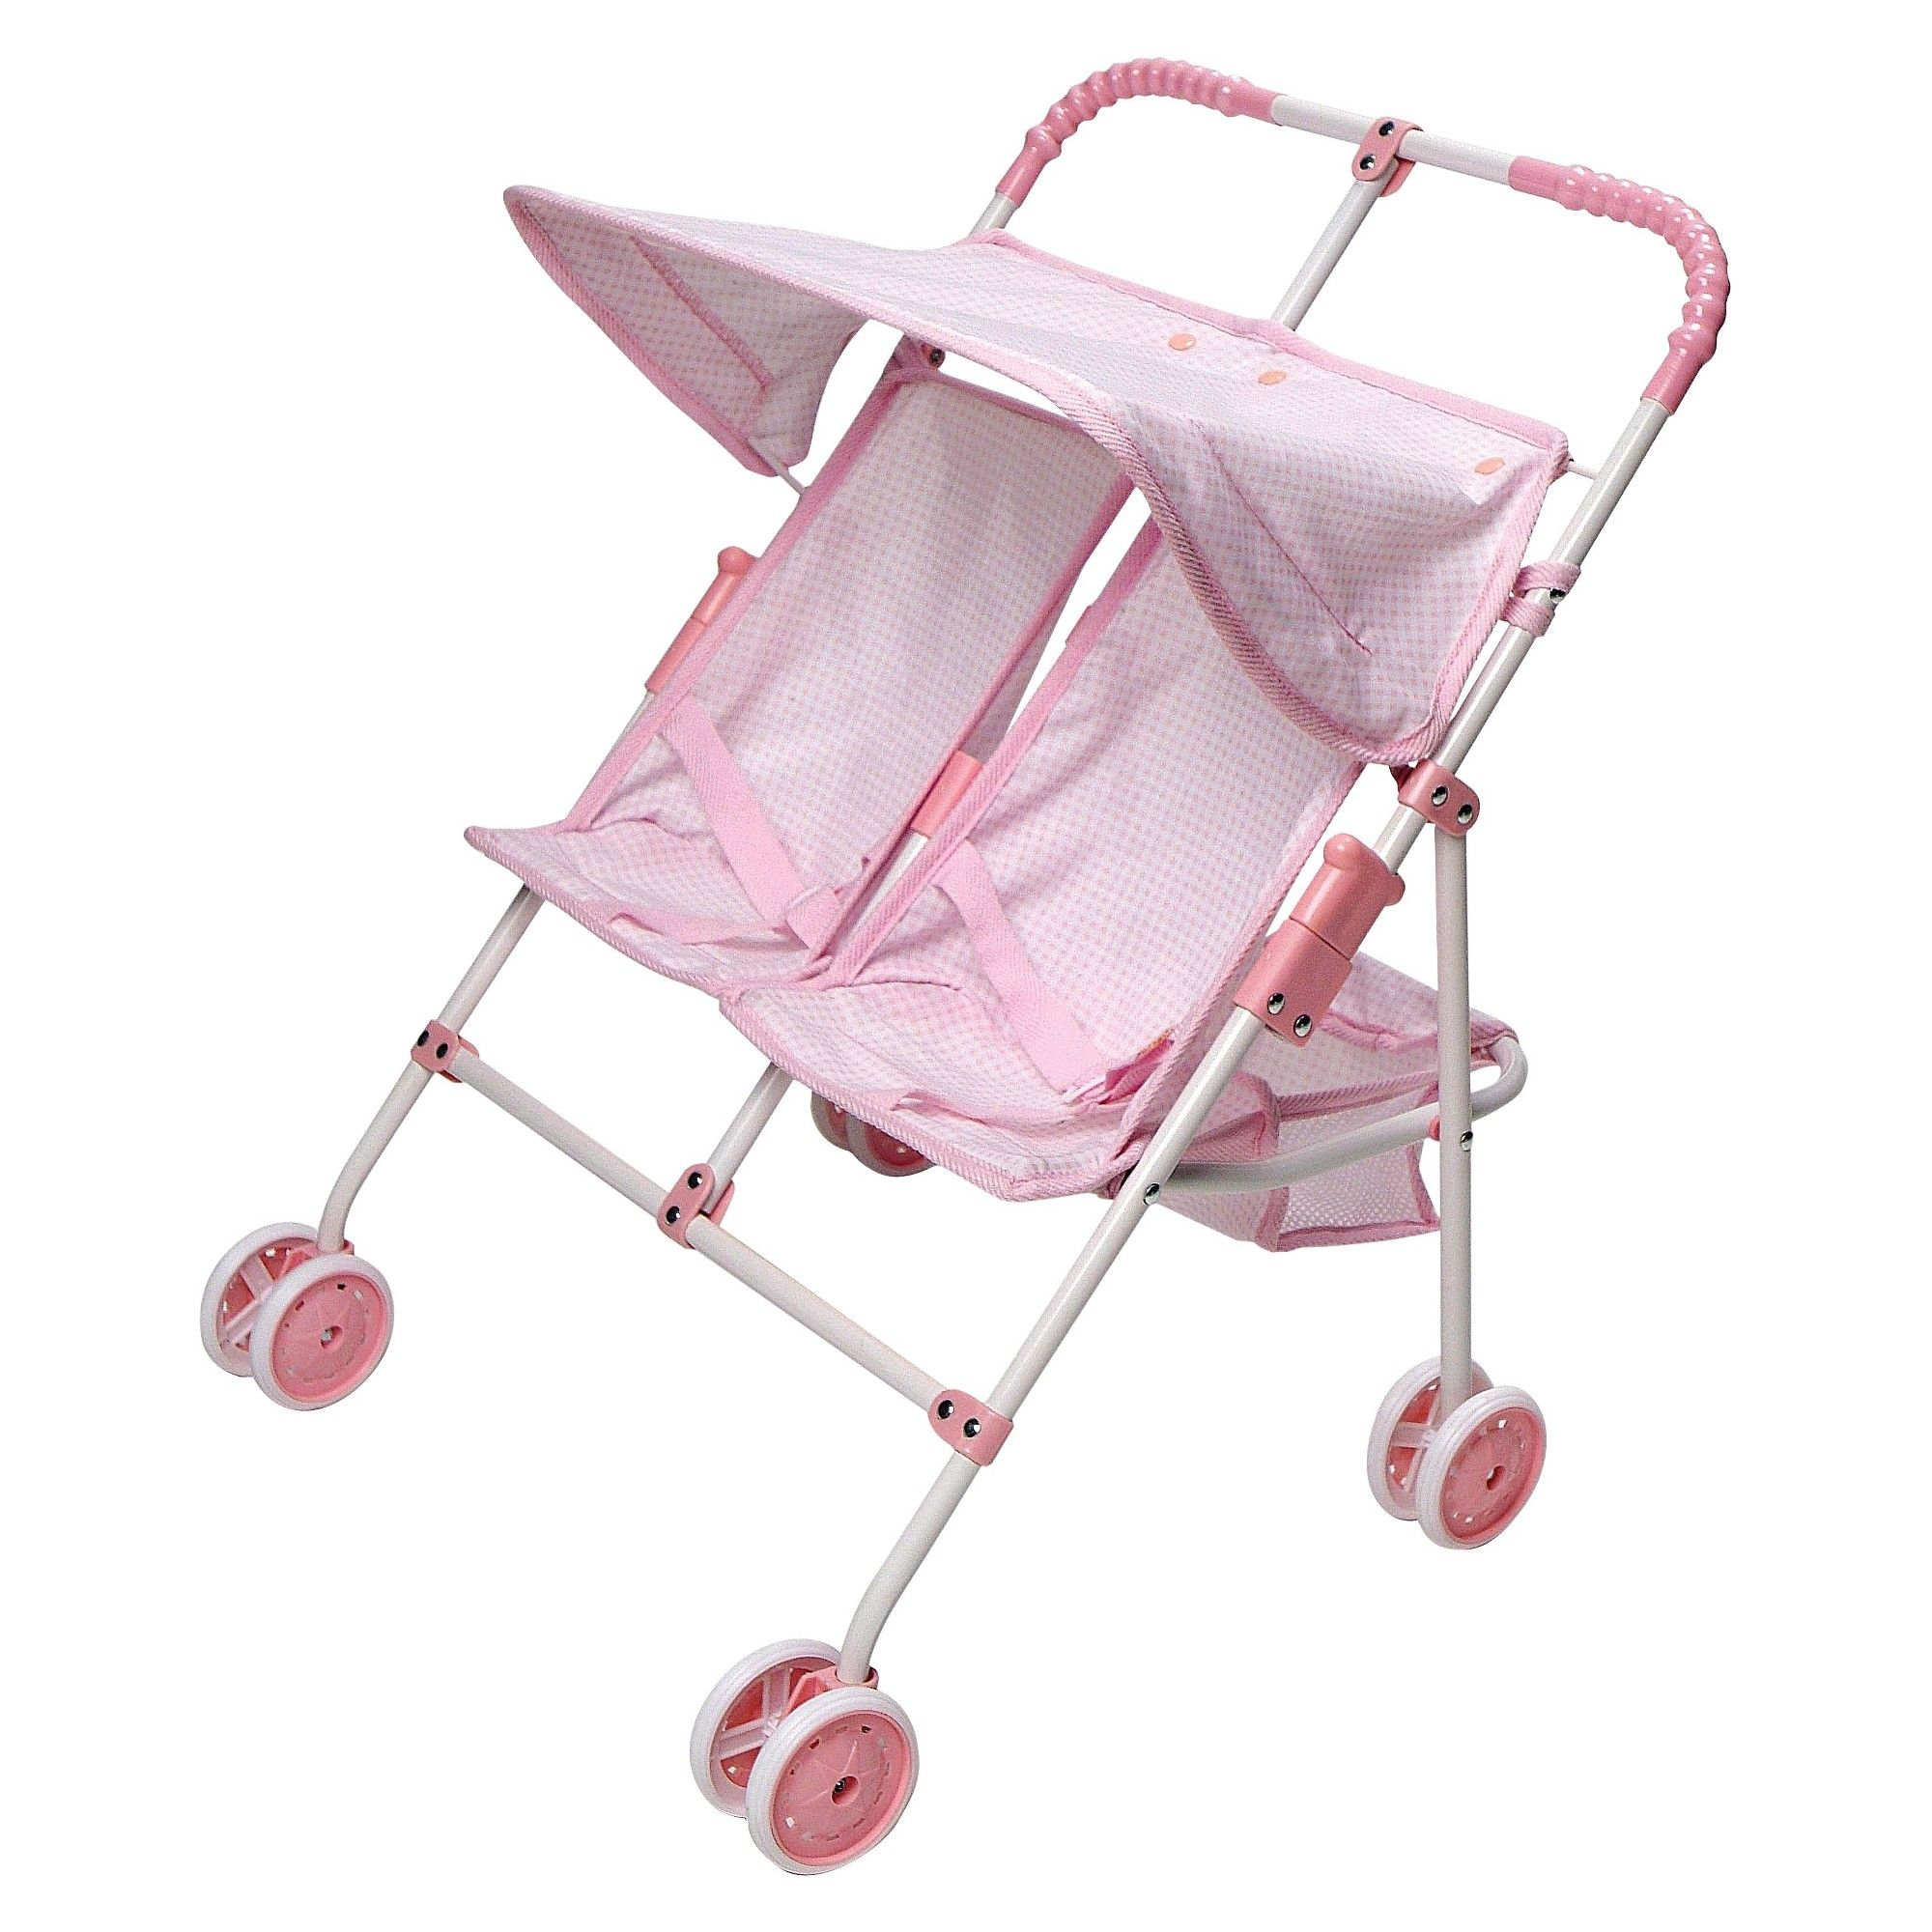 Badger Basket Double Doll SidebySide Umbrella Stroller